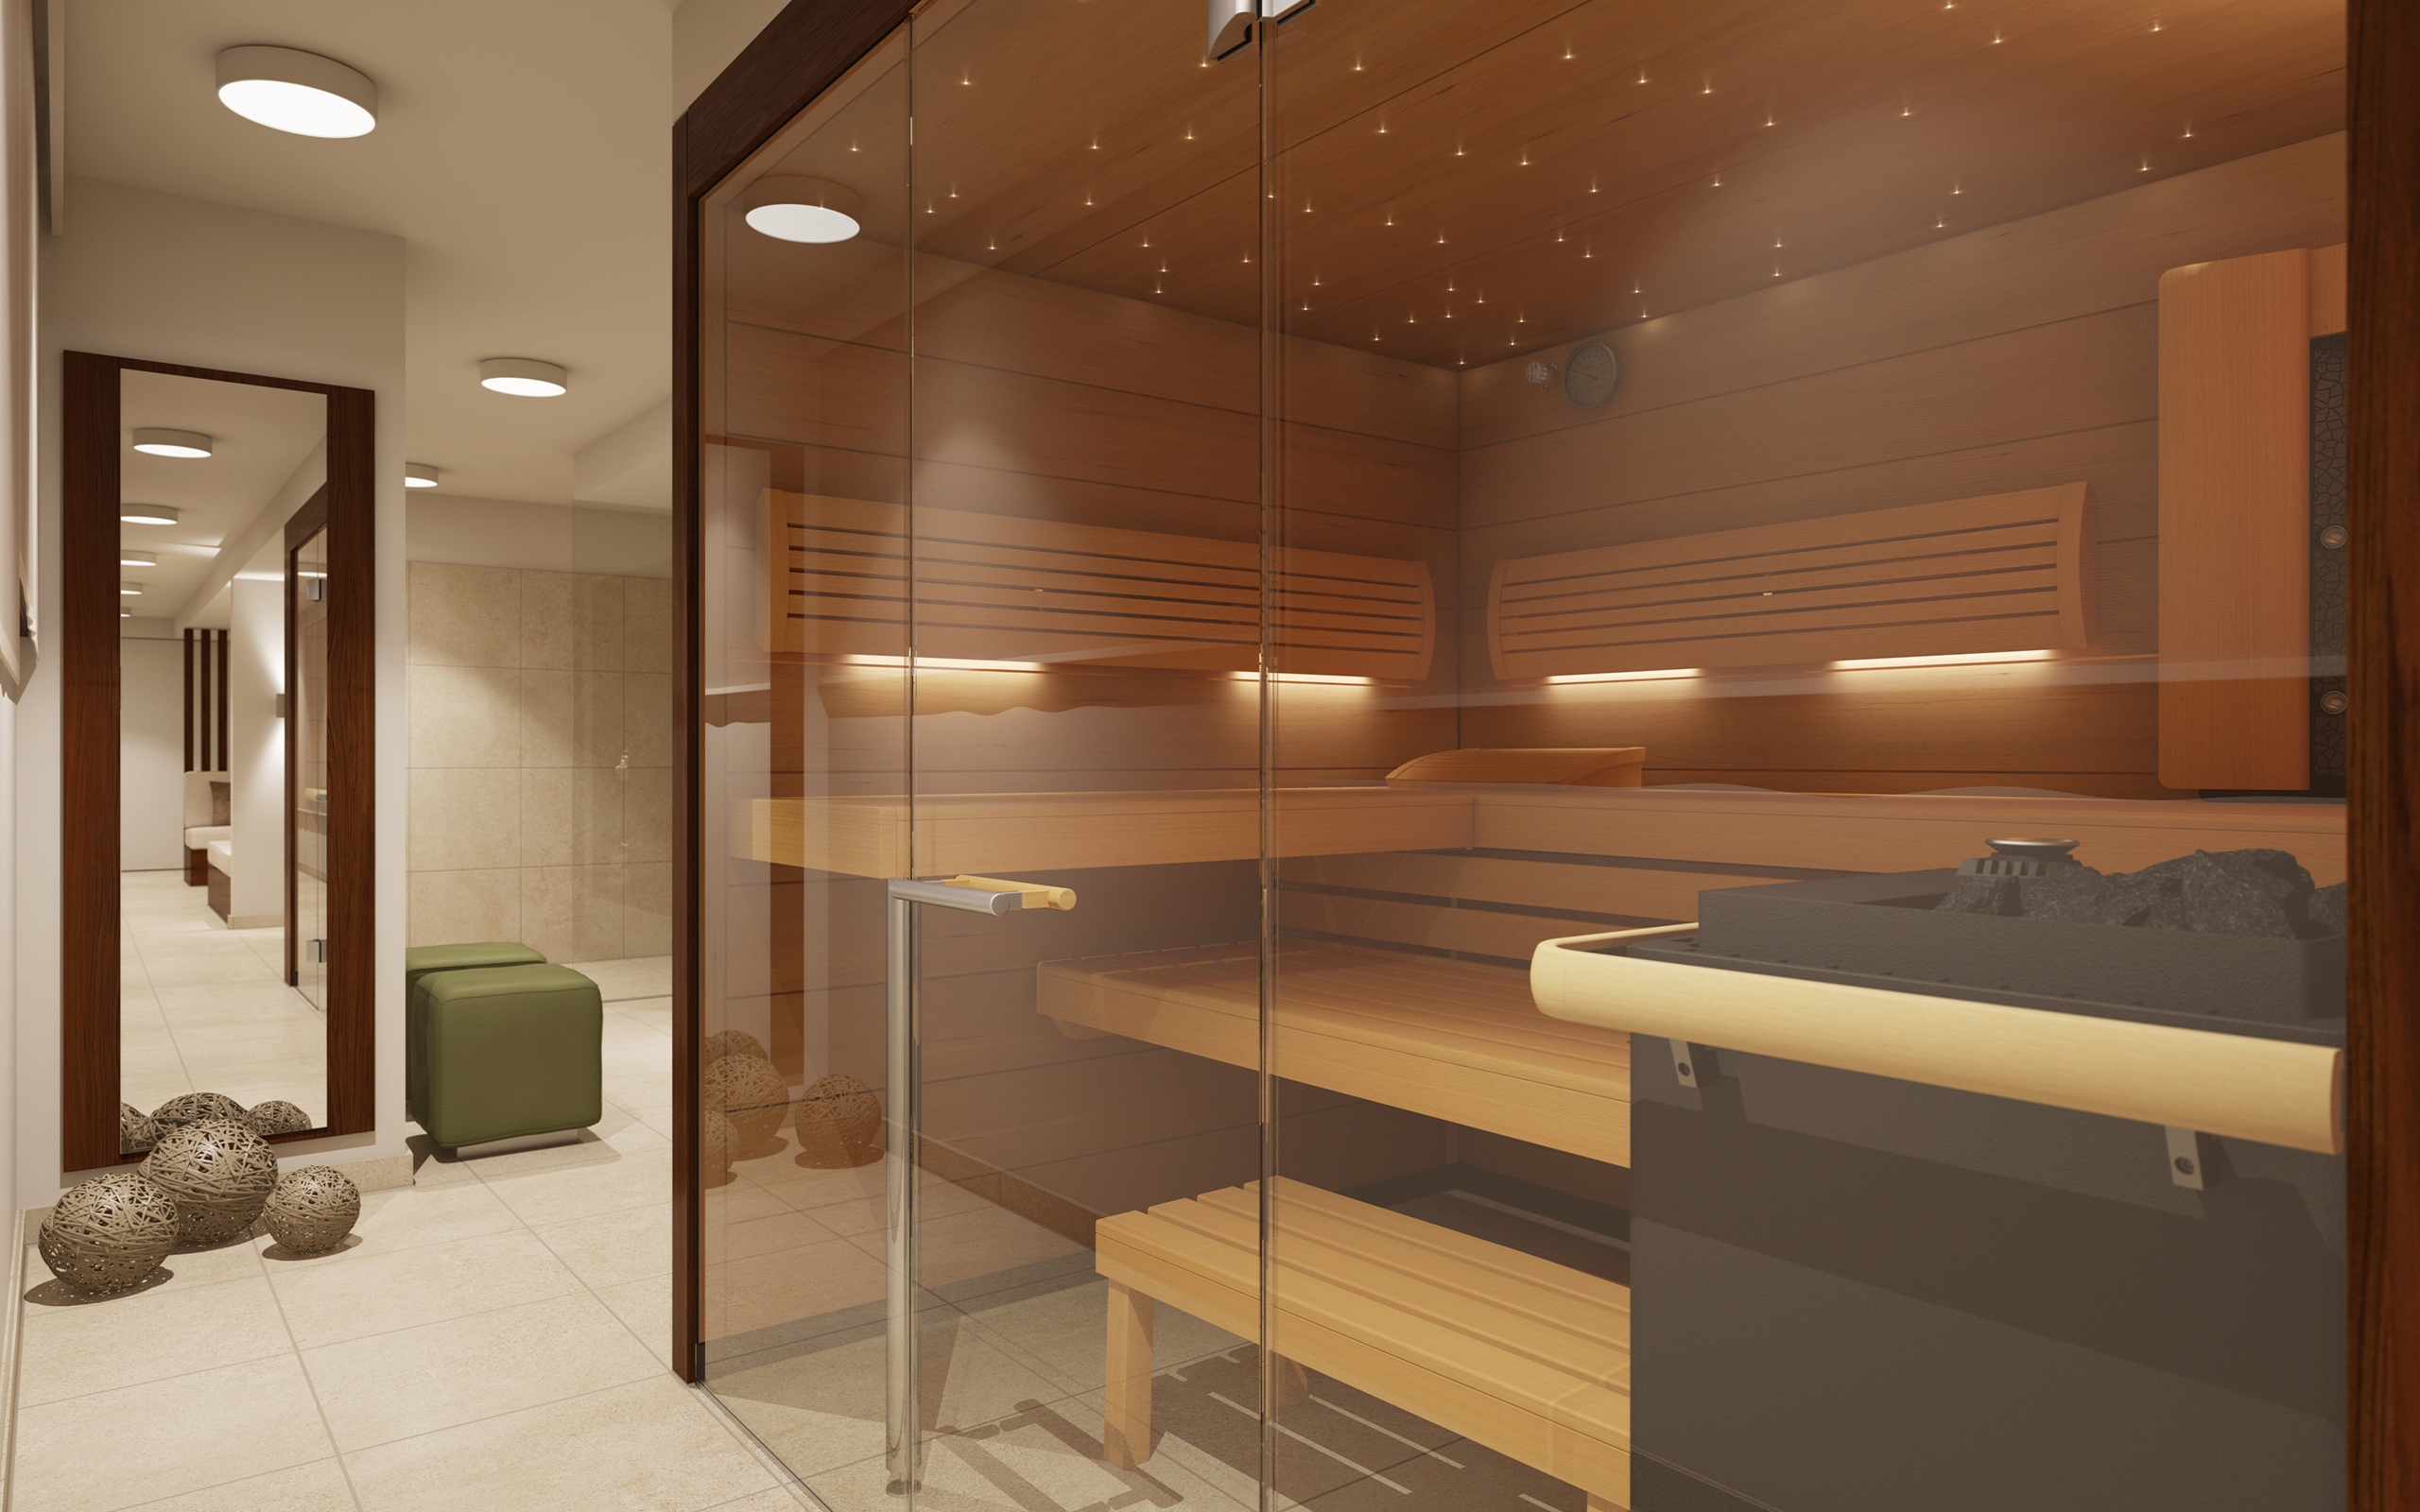 ideas and solutions for installing a sauna in your home spa - Sauna Design Ideas